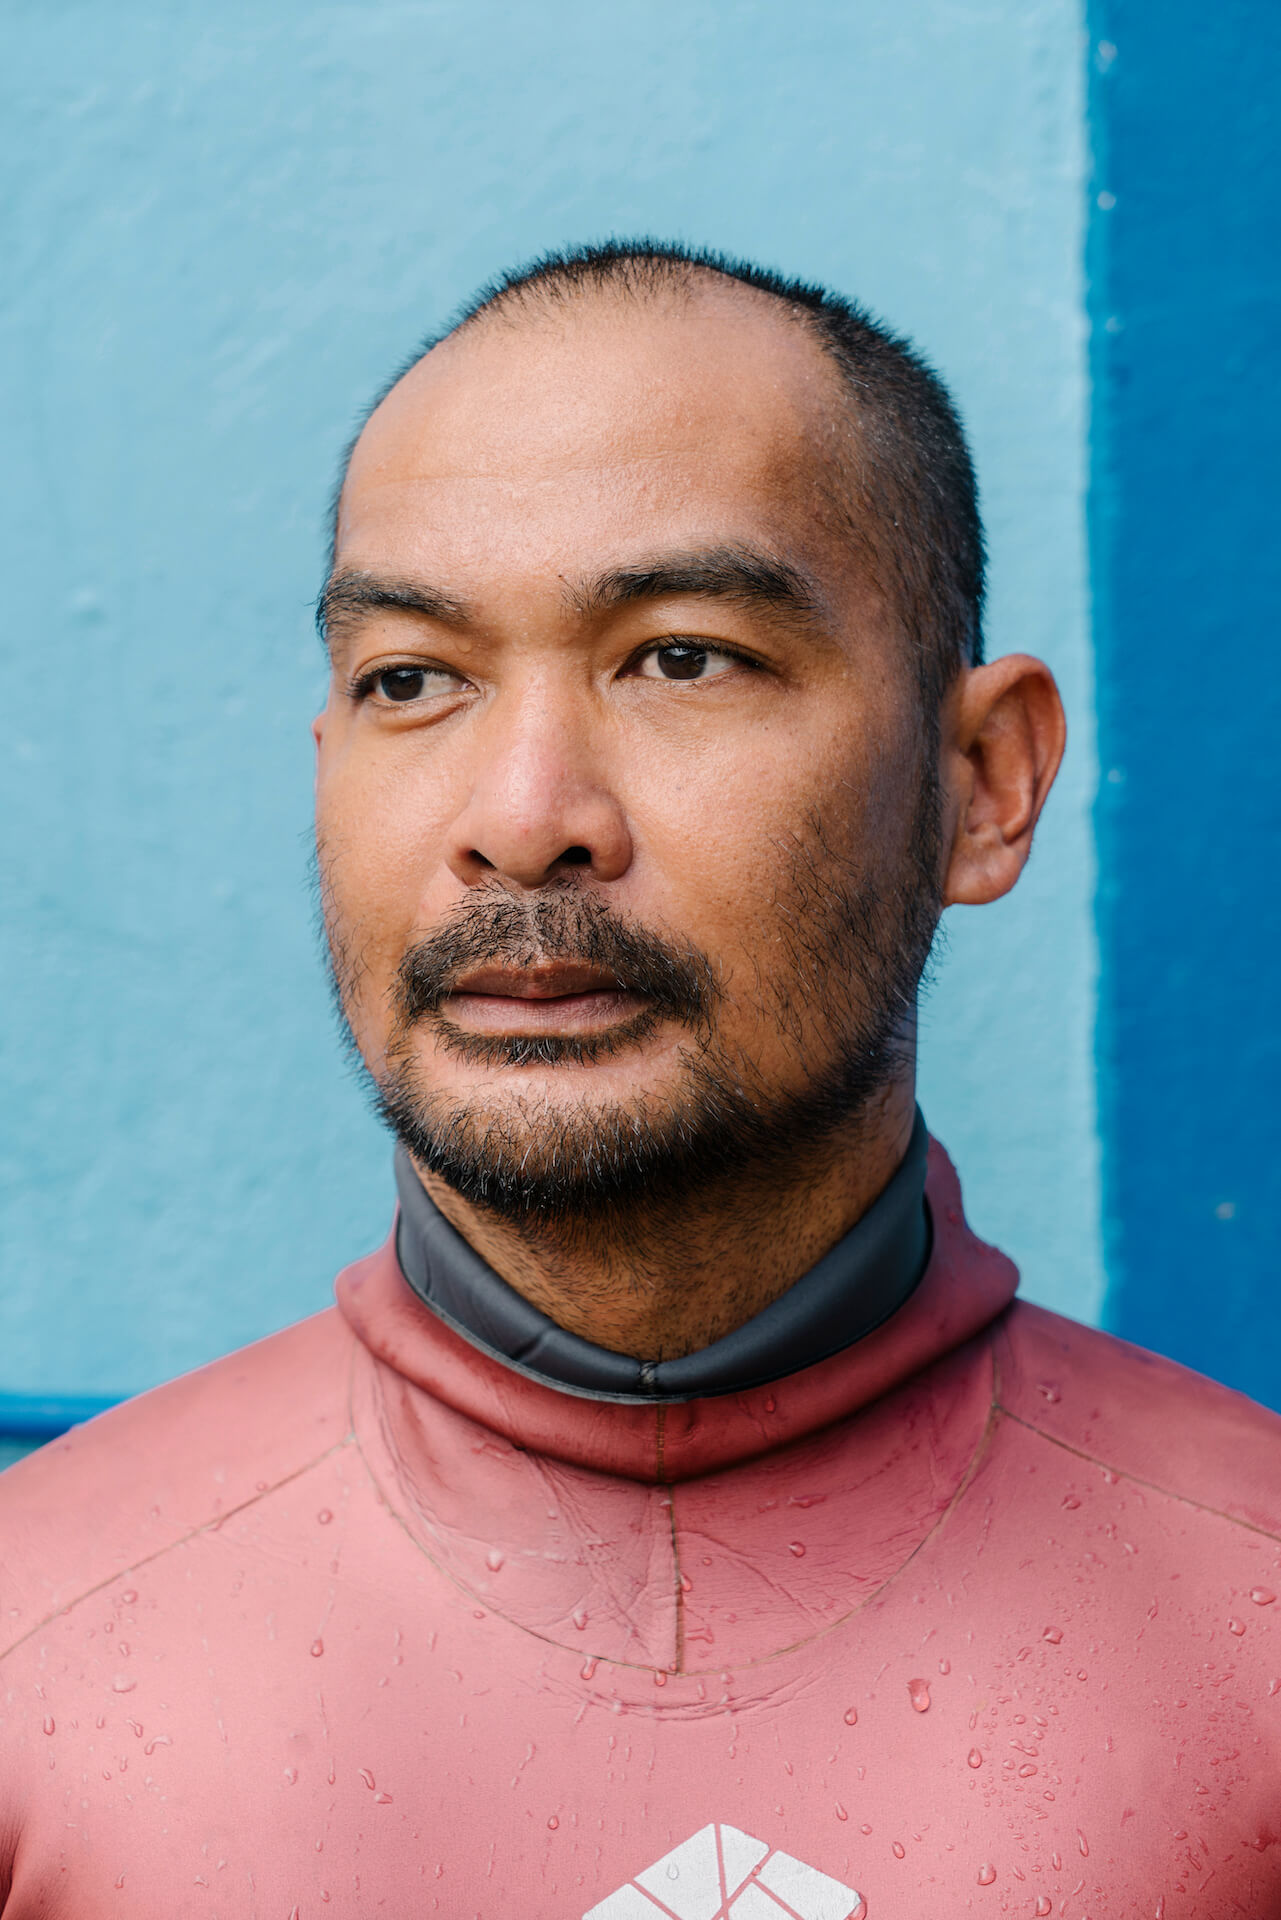 Carlo Navarro in a wetsuit poses outside of the ManuMano freedive house